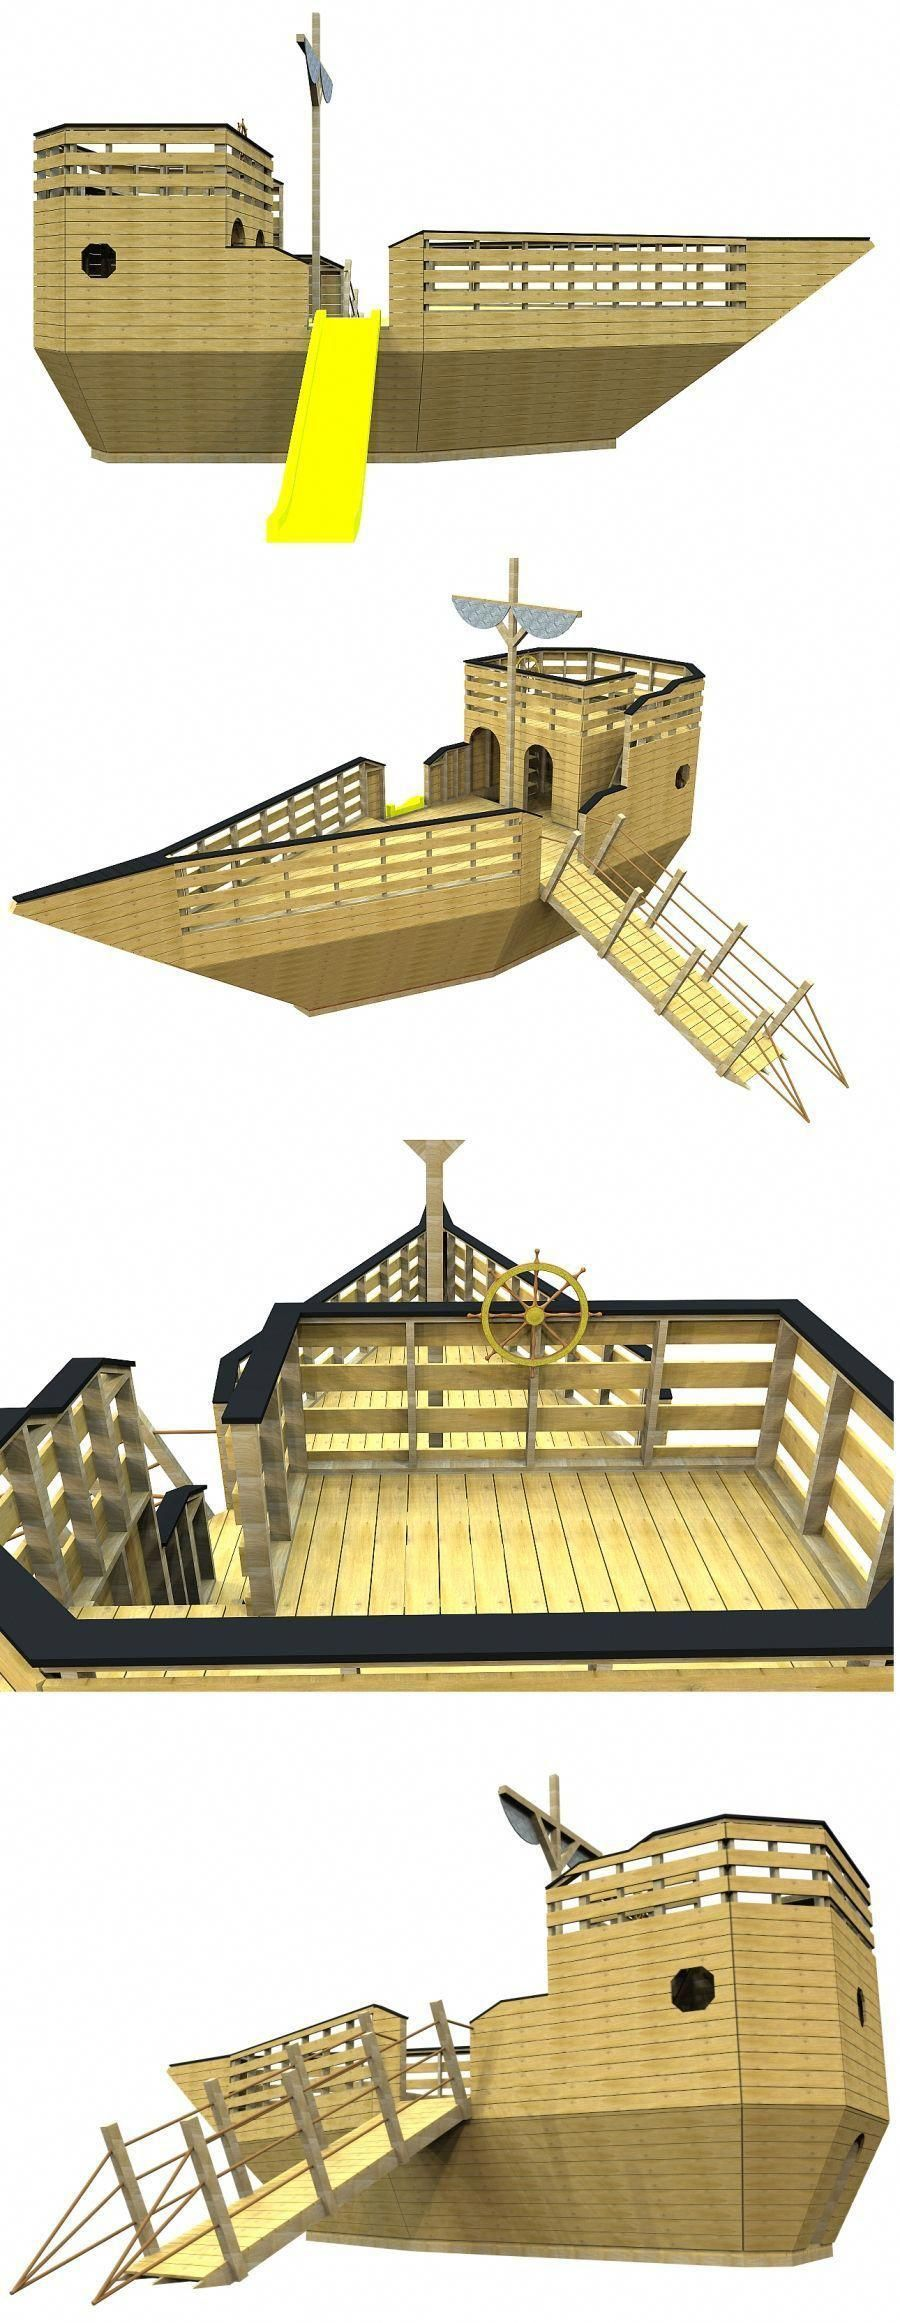 The pirate ship playhouse plan, hosted on paulsplayhouses ...